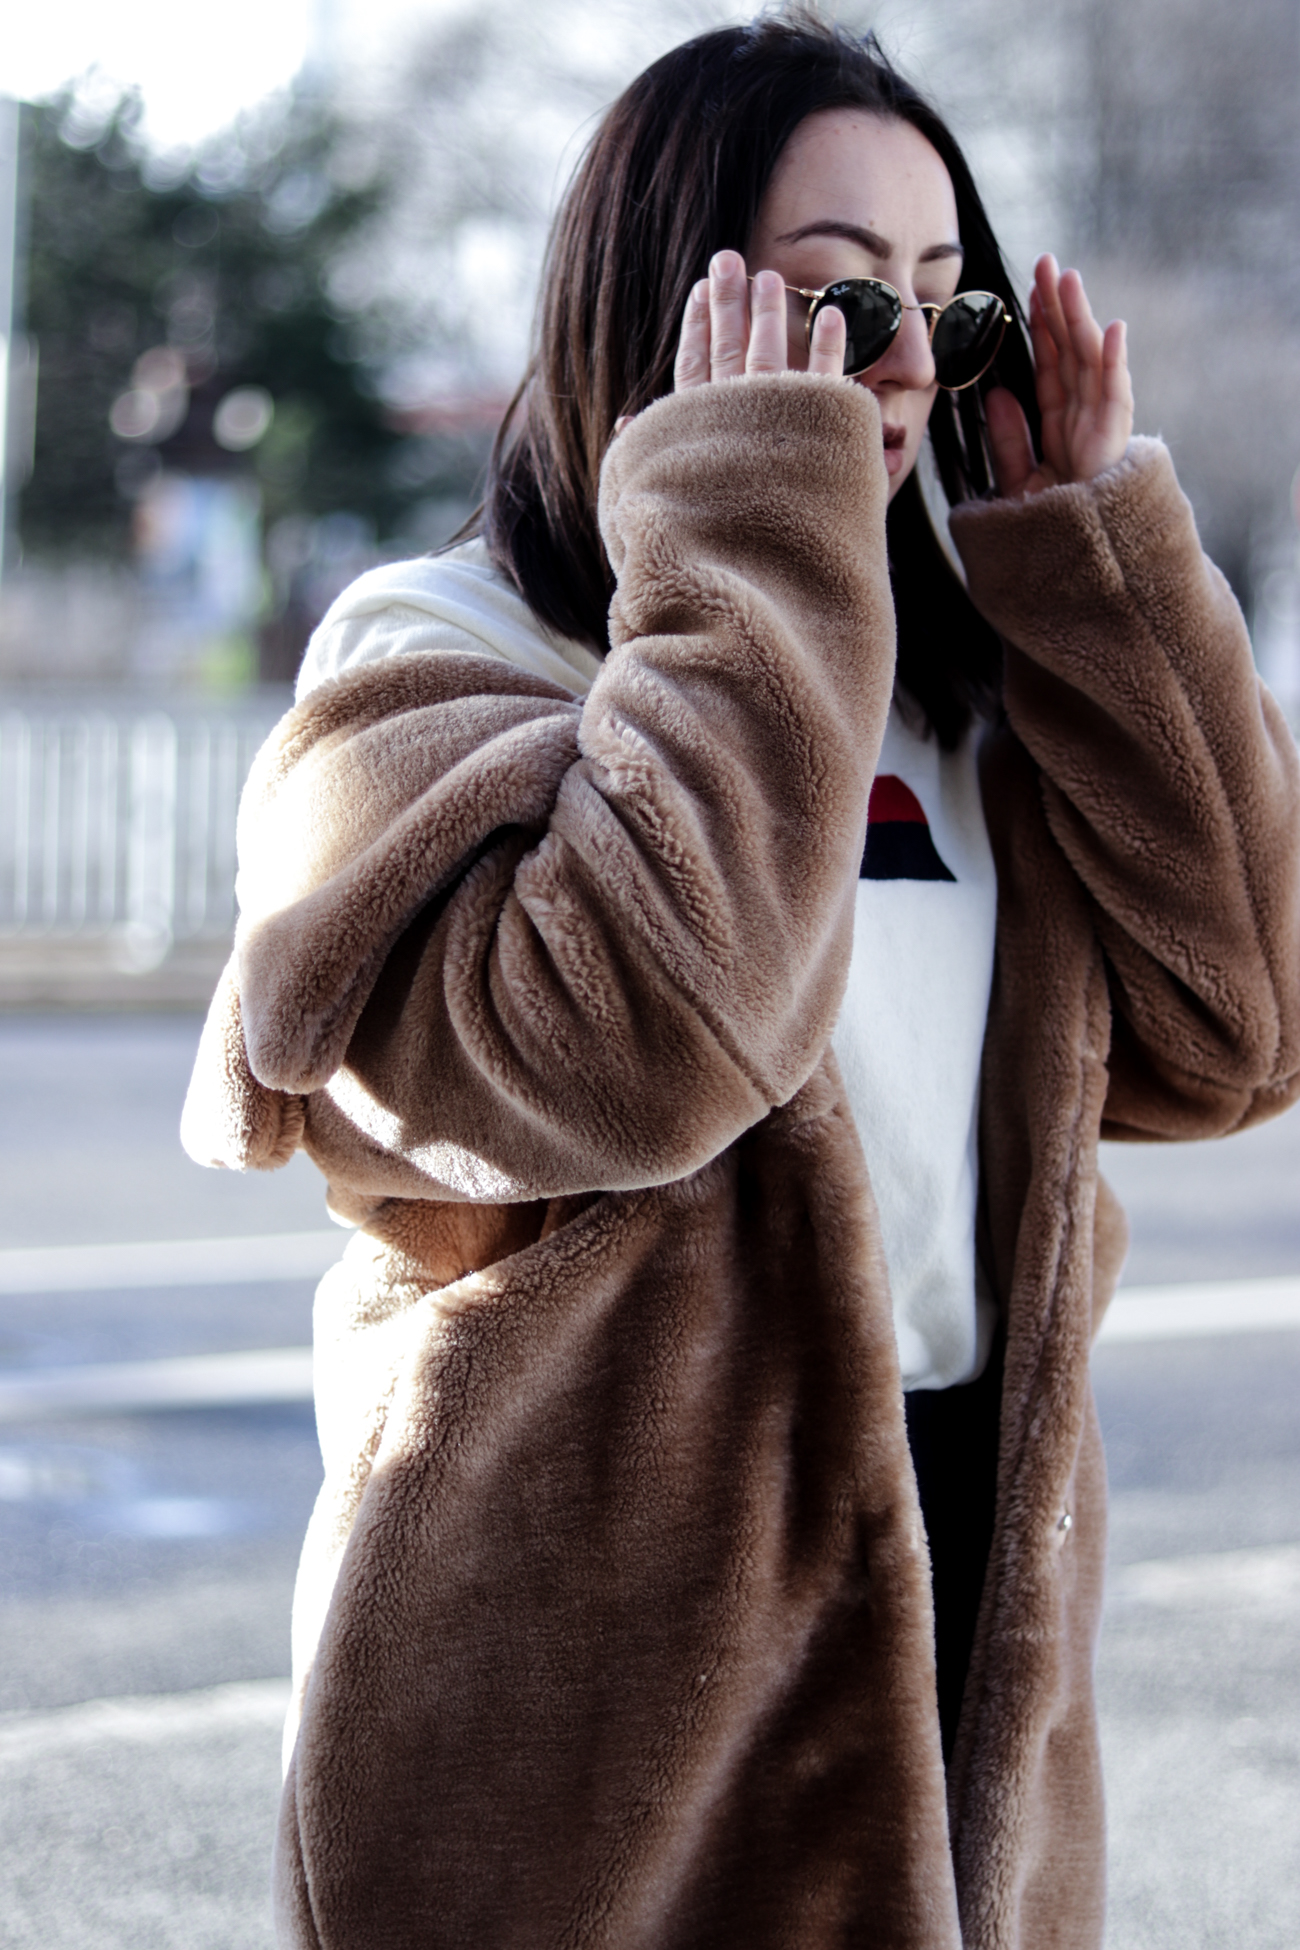 How to style a teddy coat?